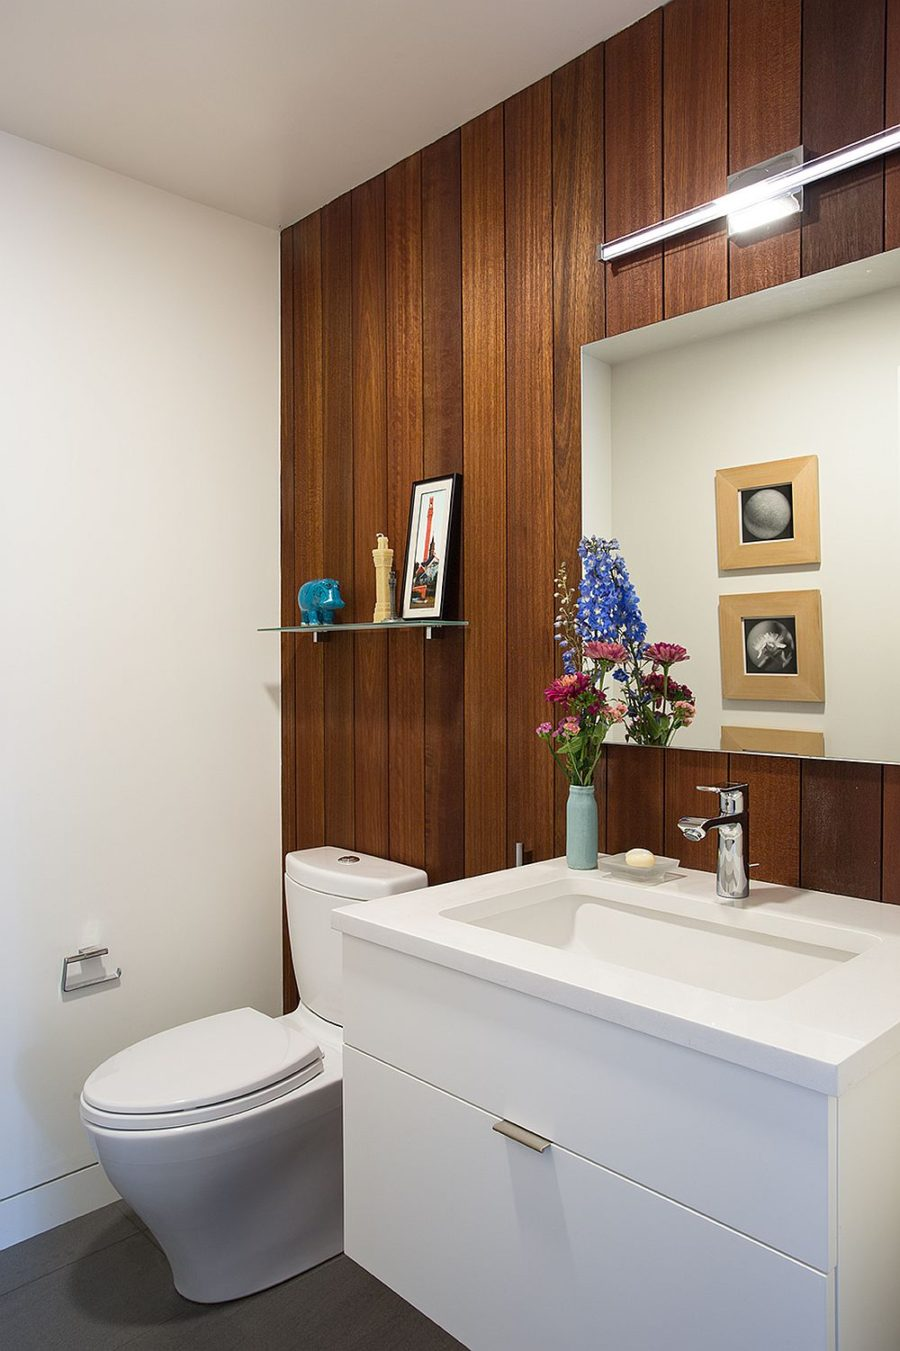 In the bathroom Mahogany wood panels contrast with white furnishings